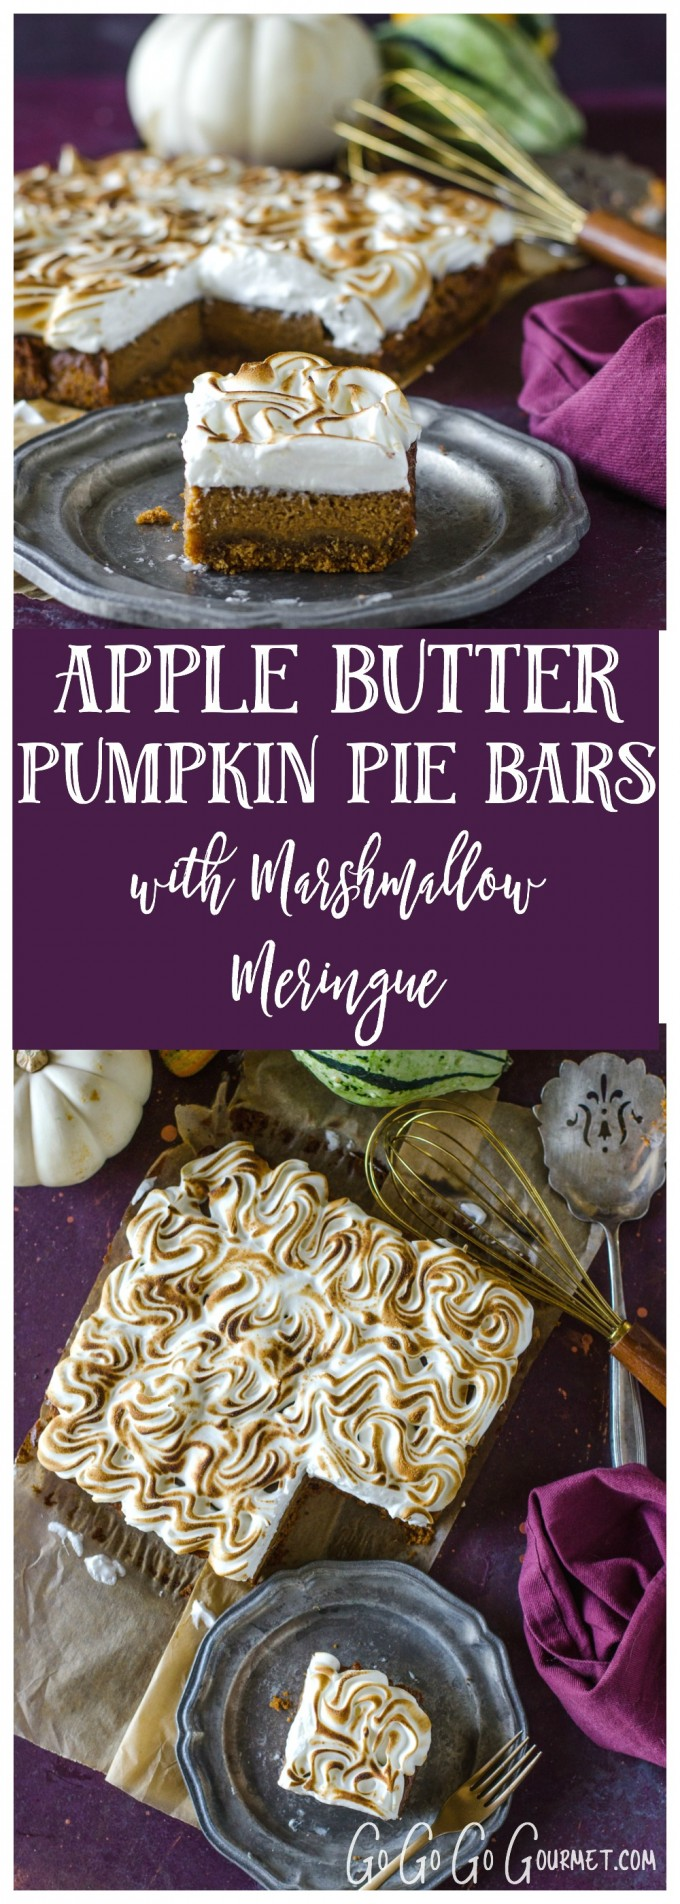 Apple Butter Pumpkin Pie Bars with Marshmallow Meringue Topping